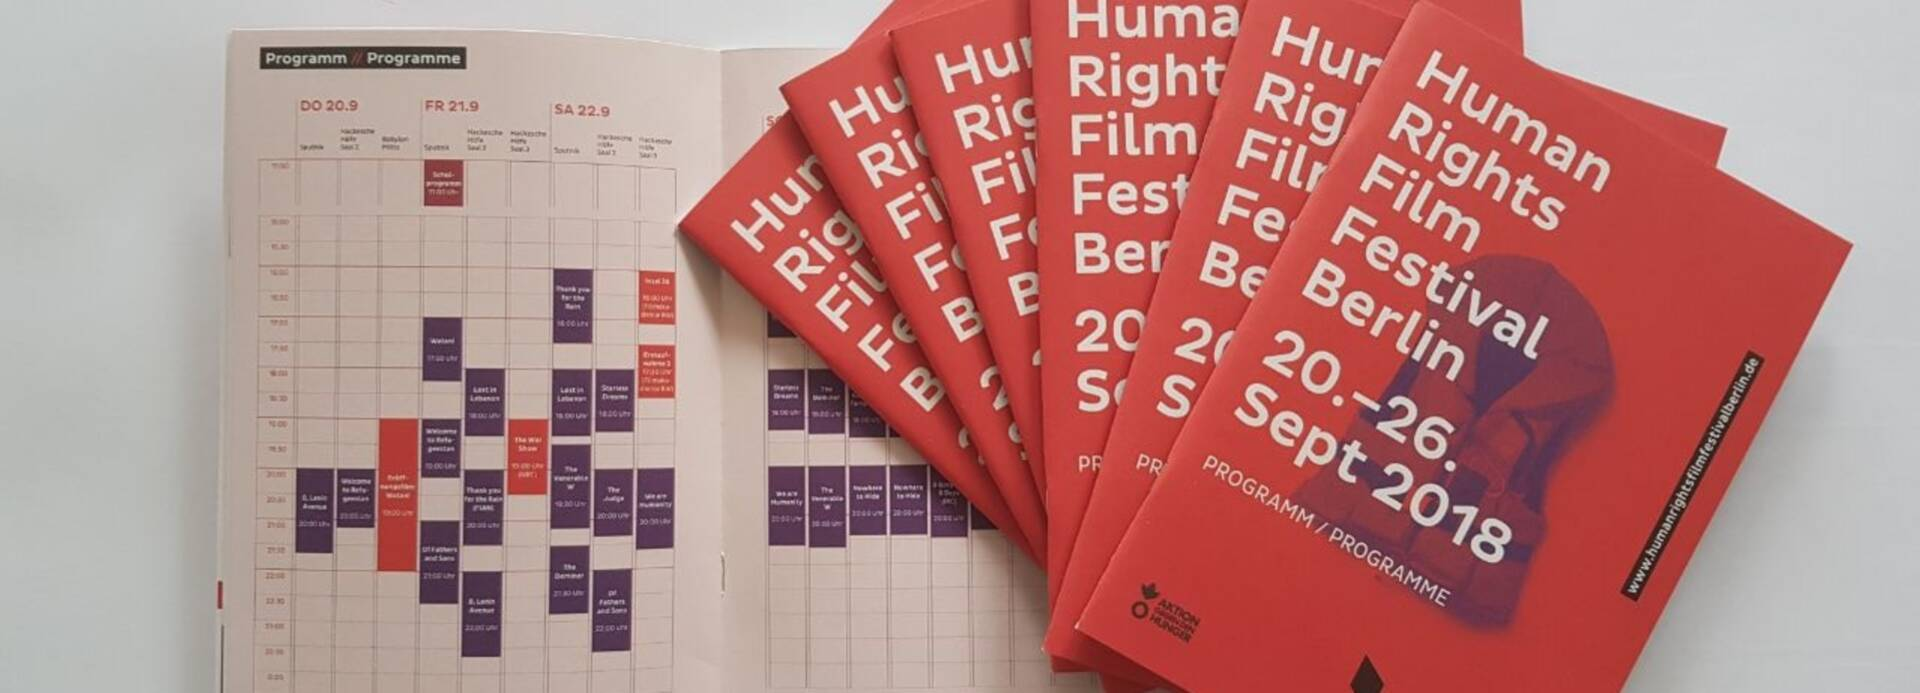 programm-human-rights-film-festival-berlin2